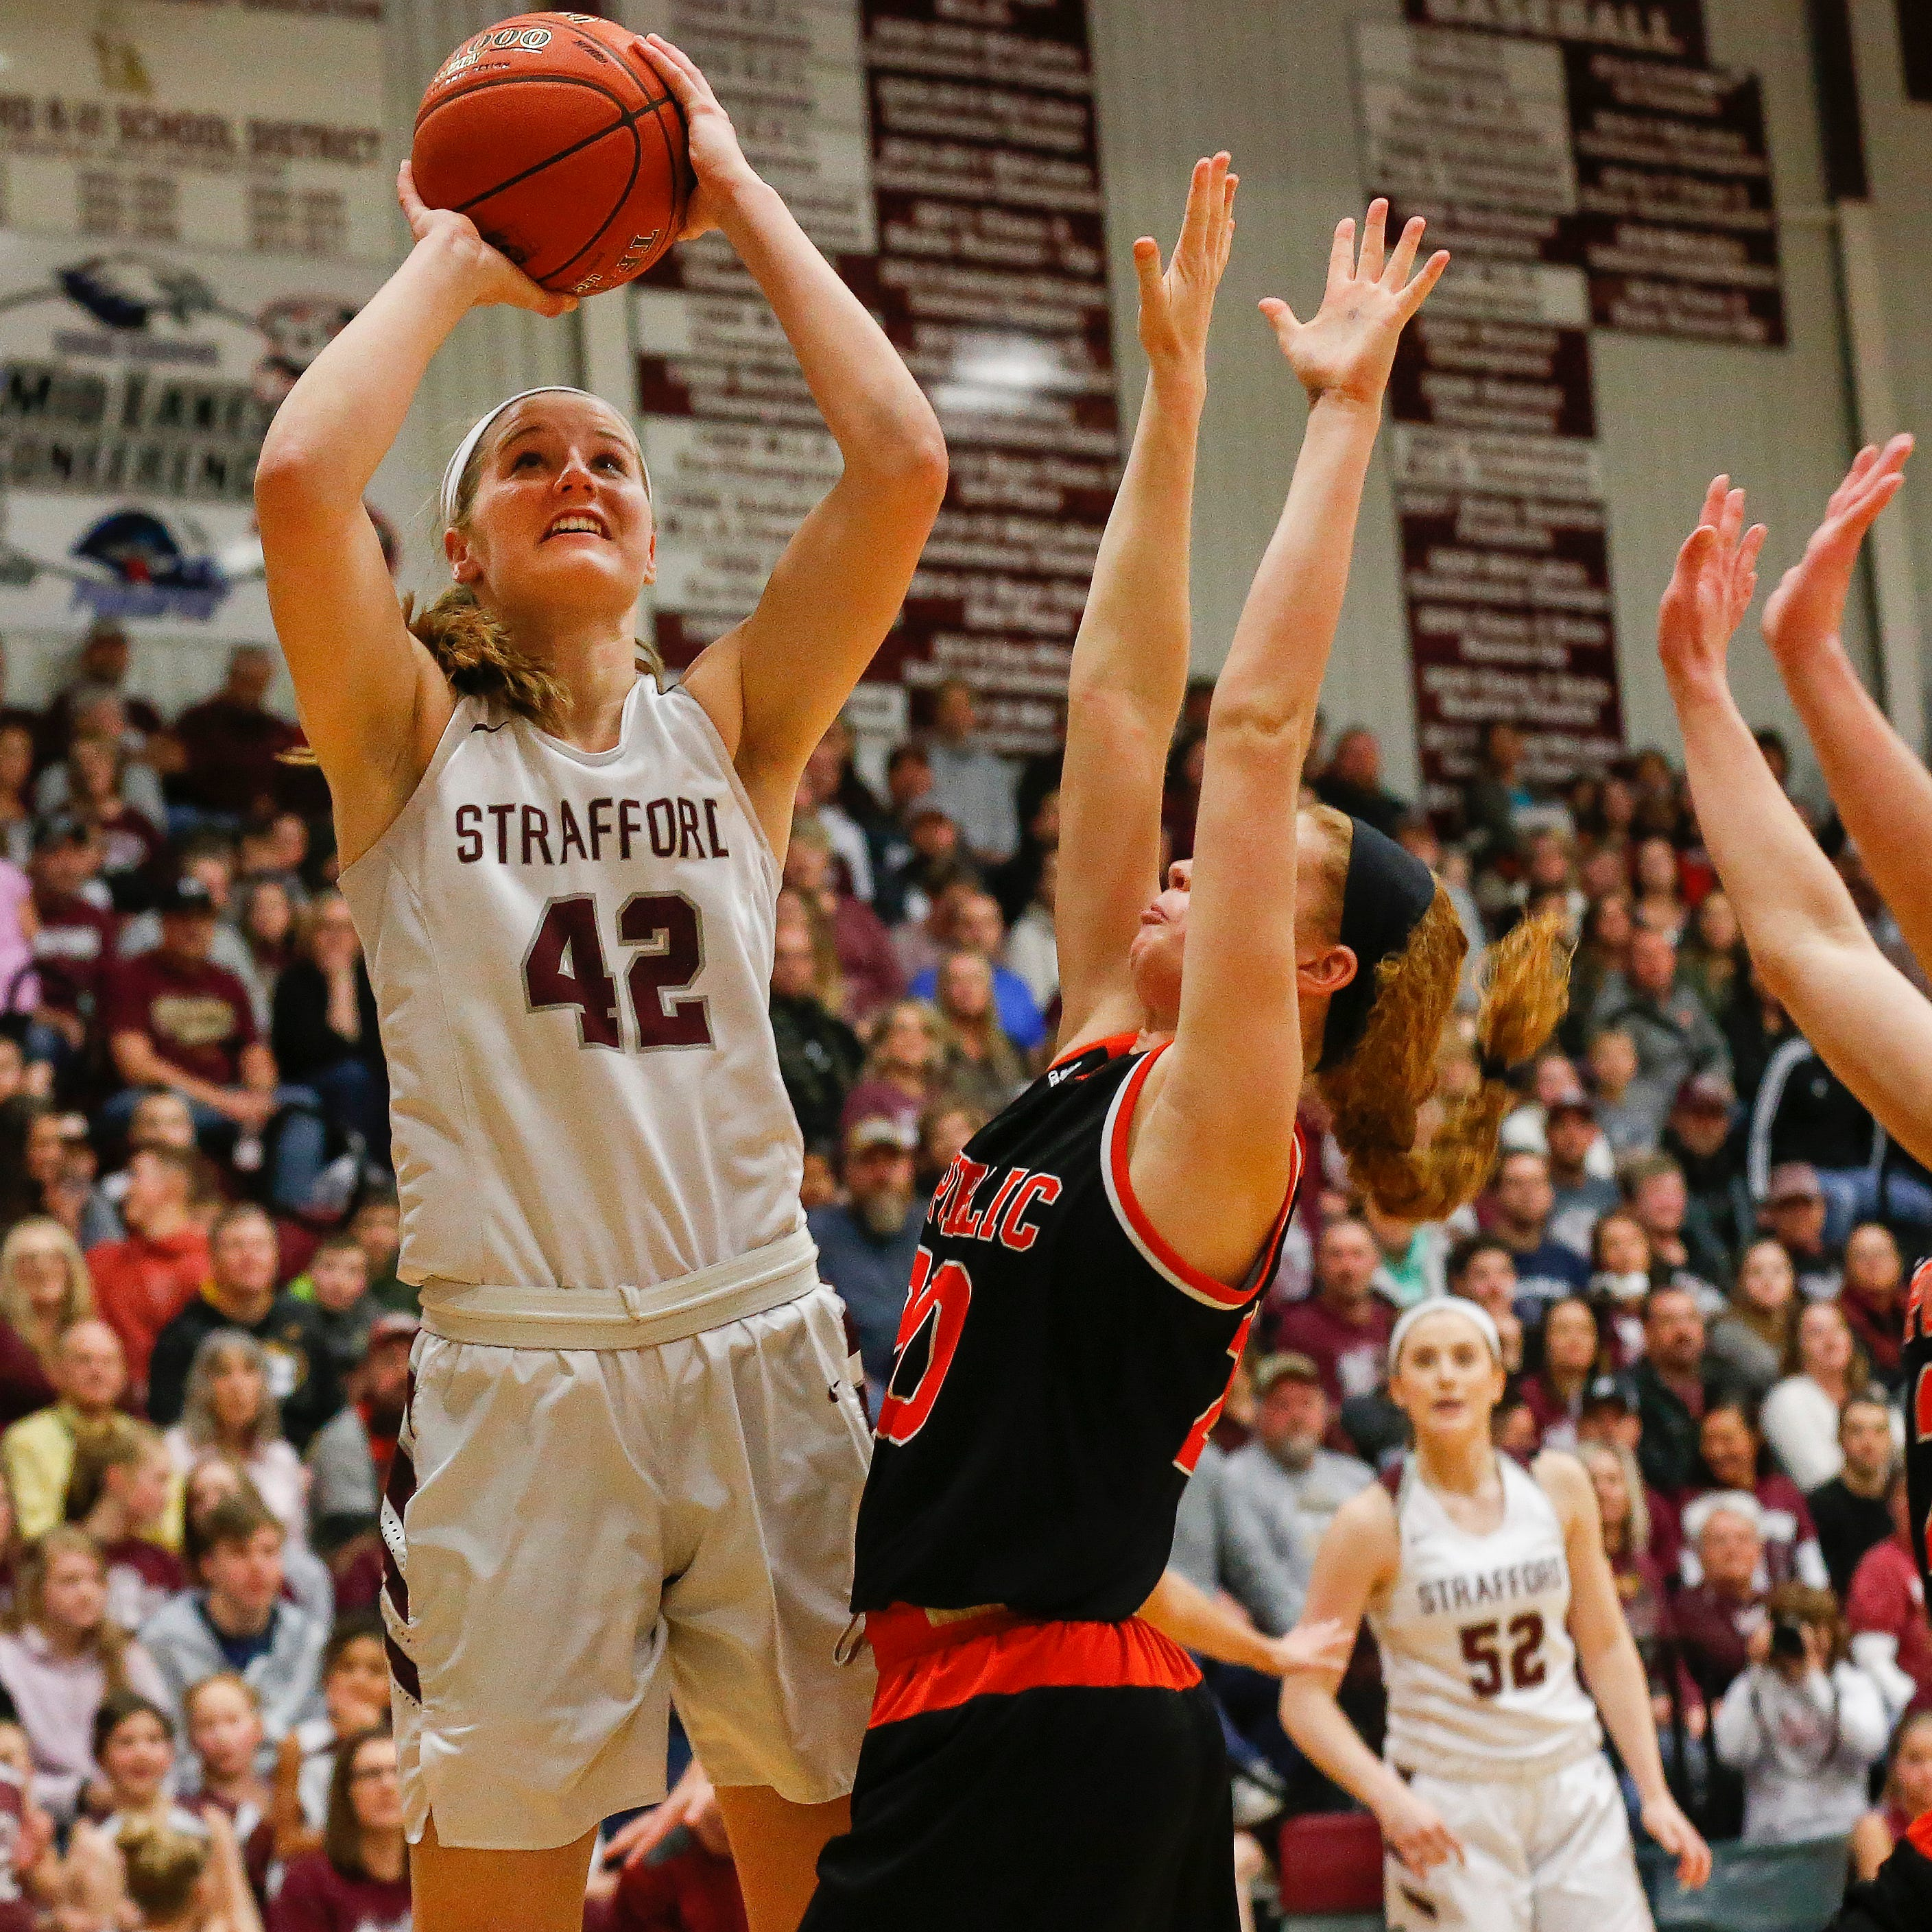 High school hoops roundup: Hayley Frank impresses (what's new?) in Lady Indians win